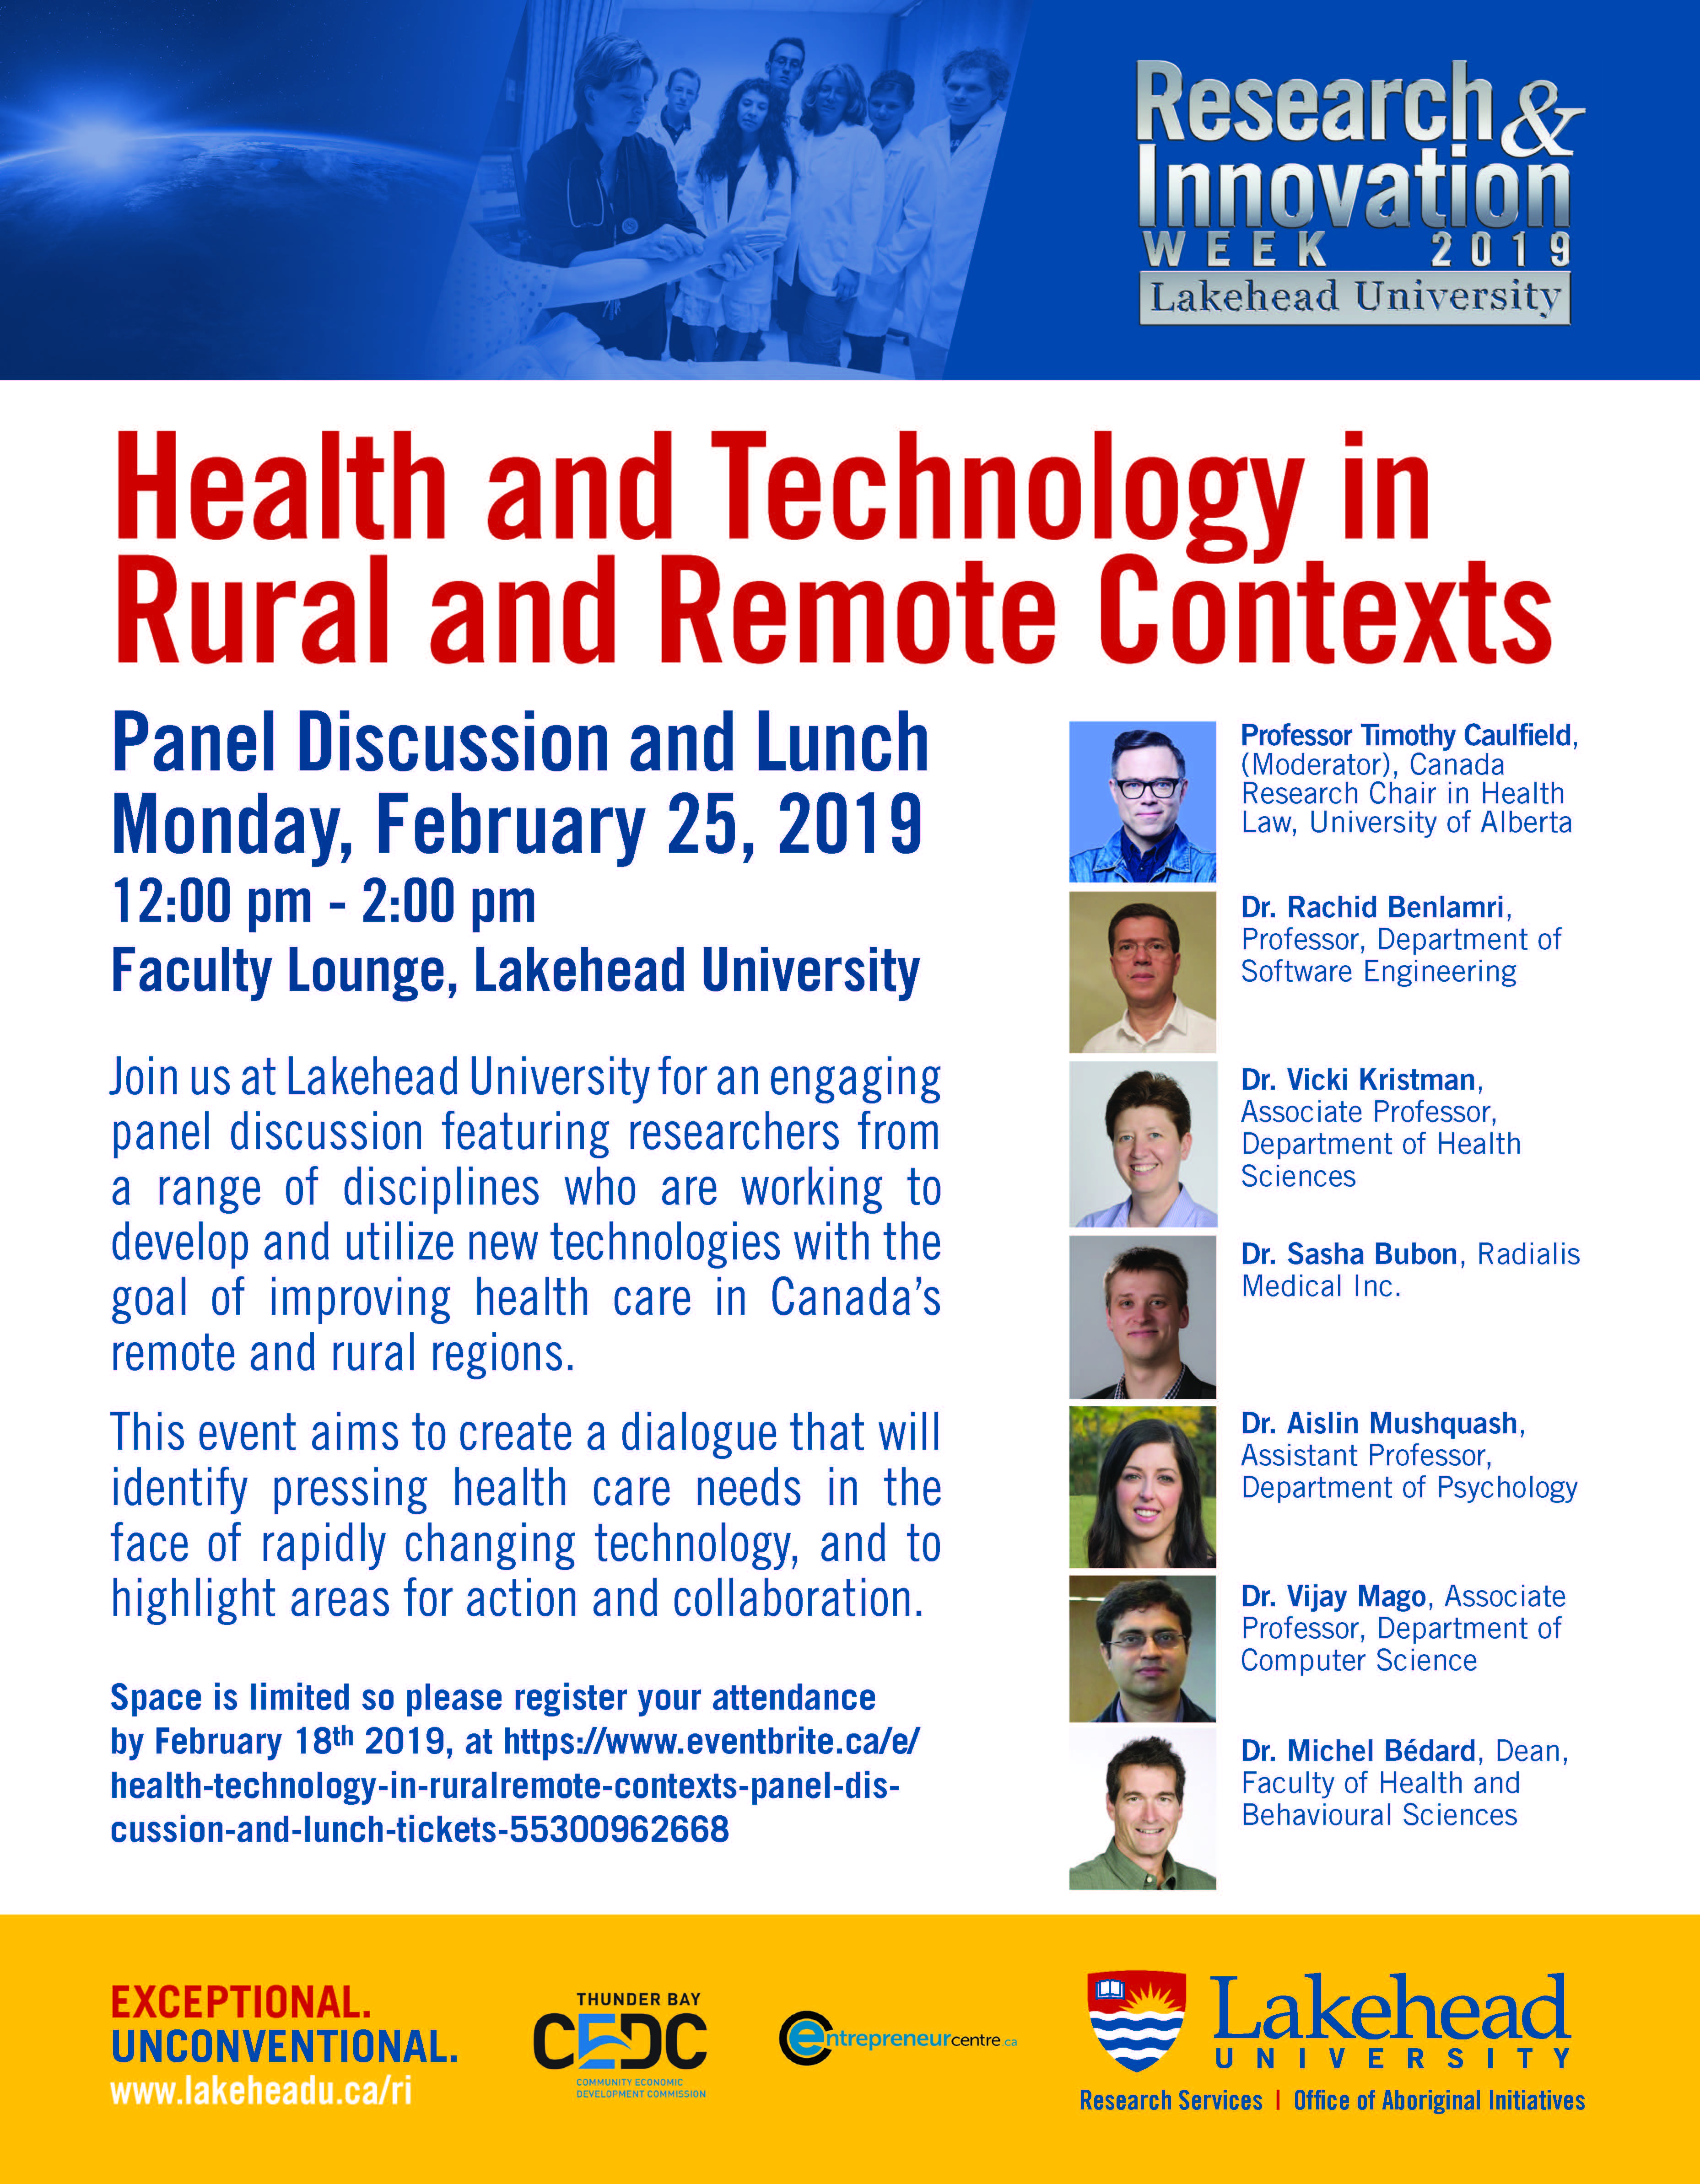 Health and Technology in Rural and Remote Contexts